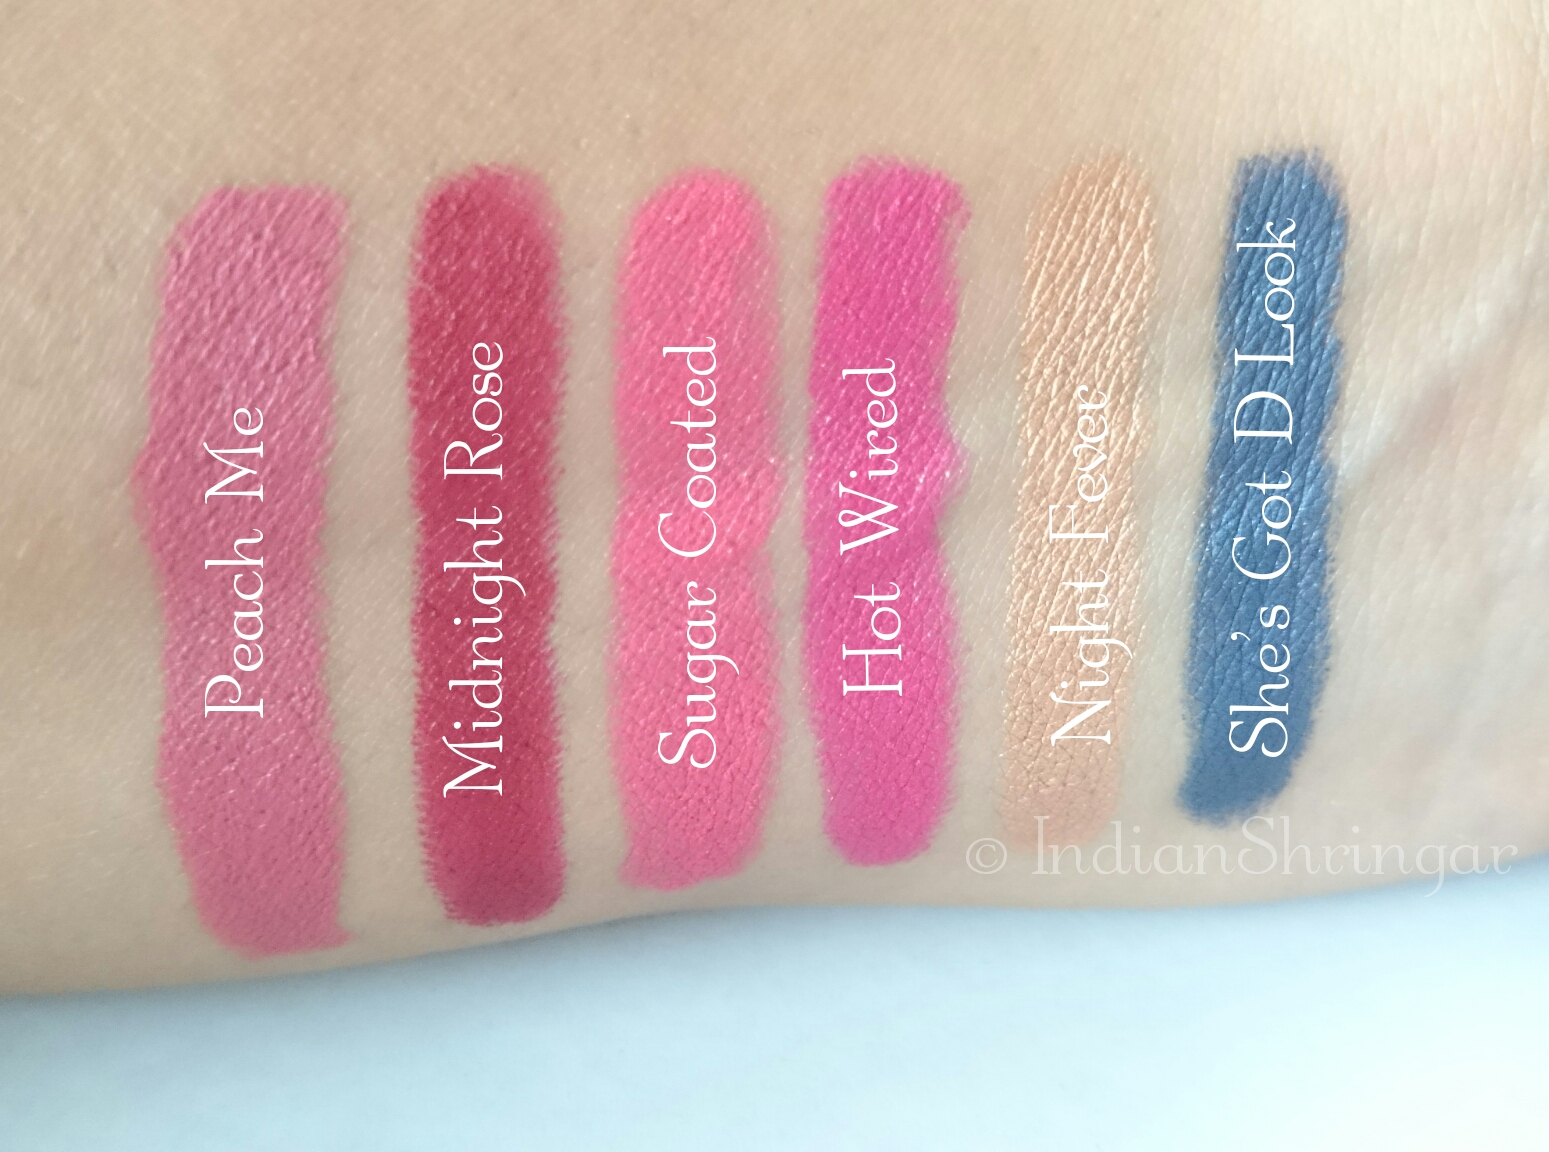 FACES Ultime Pro Lip Crayon and Eye Crayon review and swatches